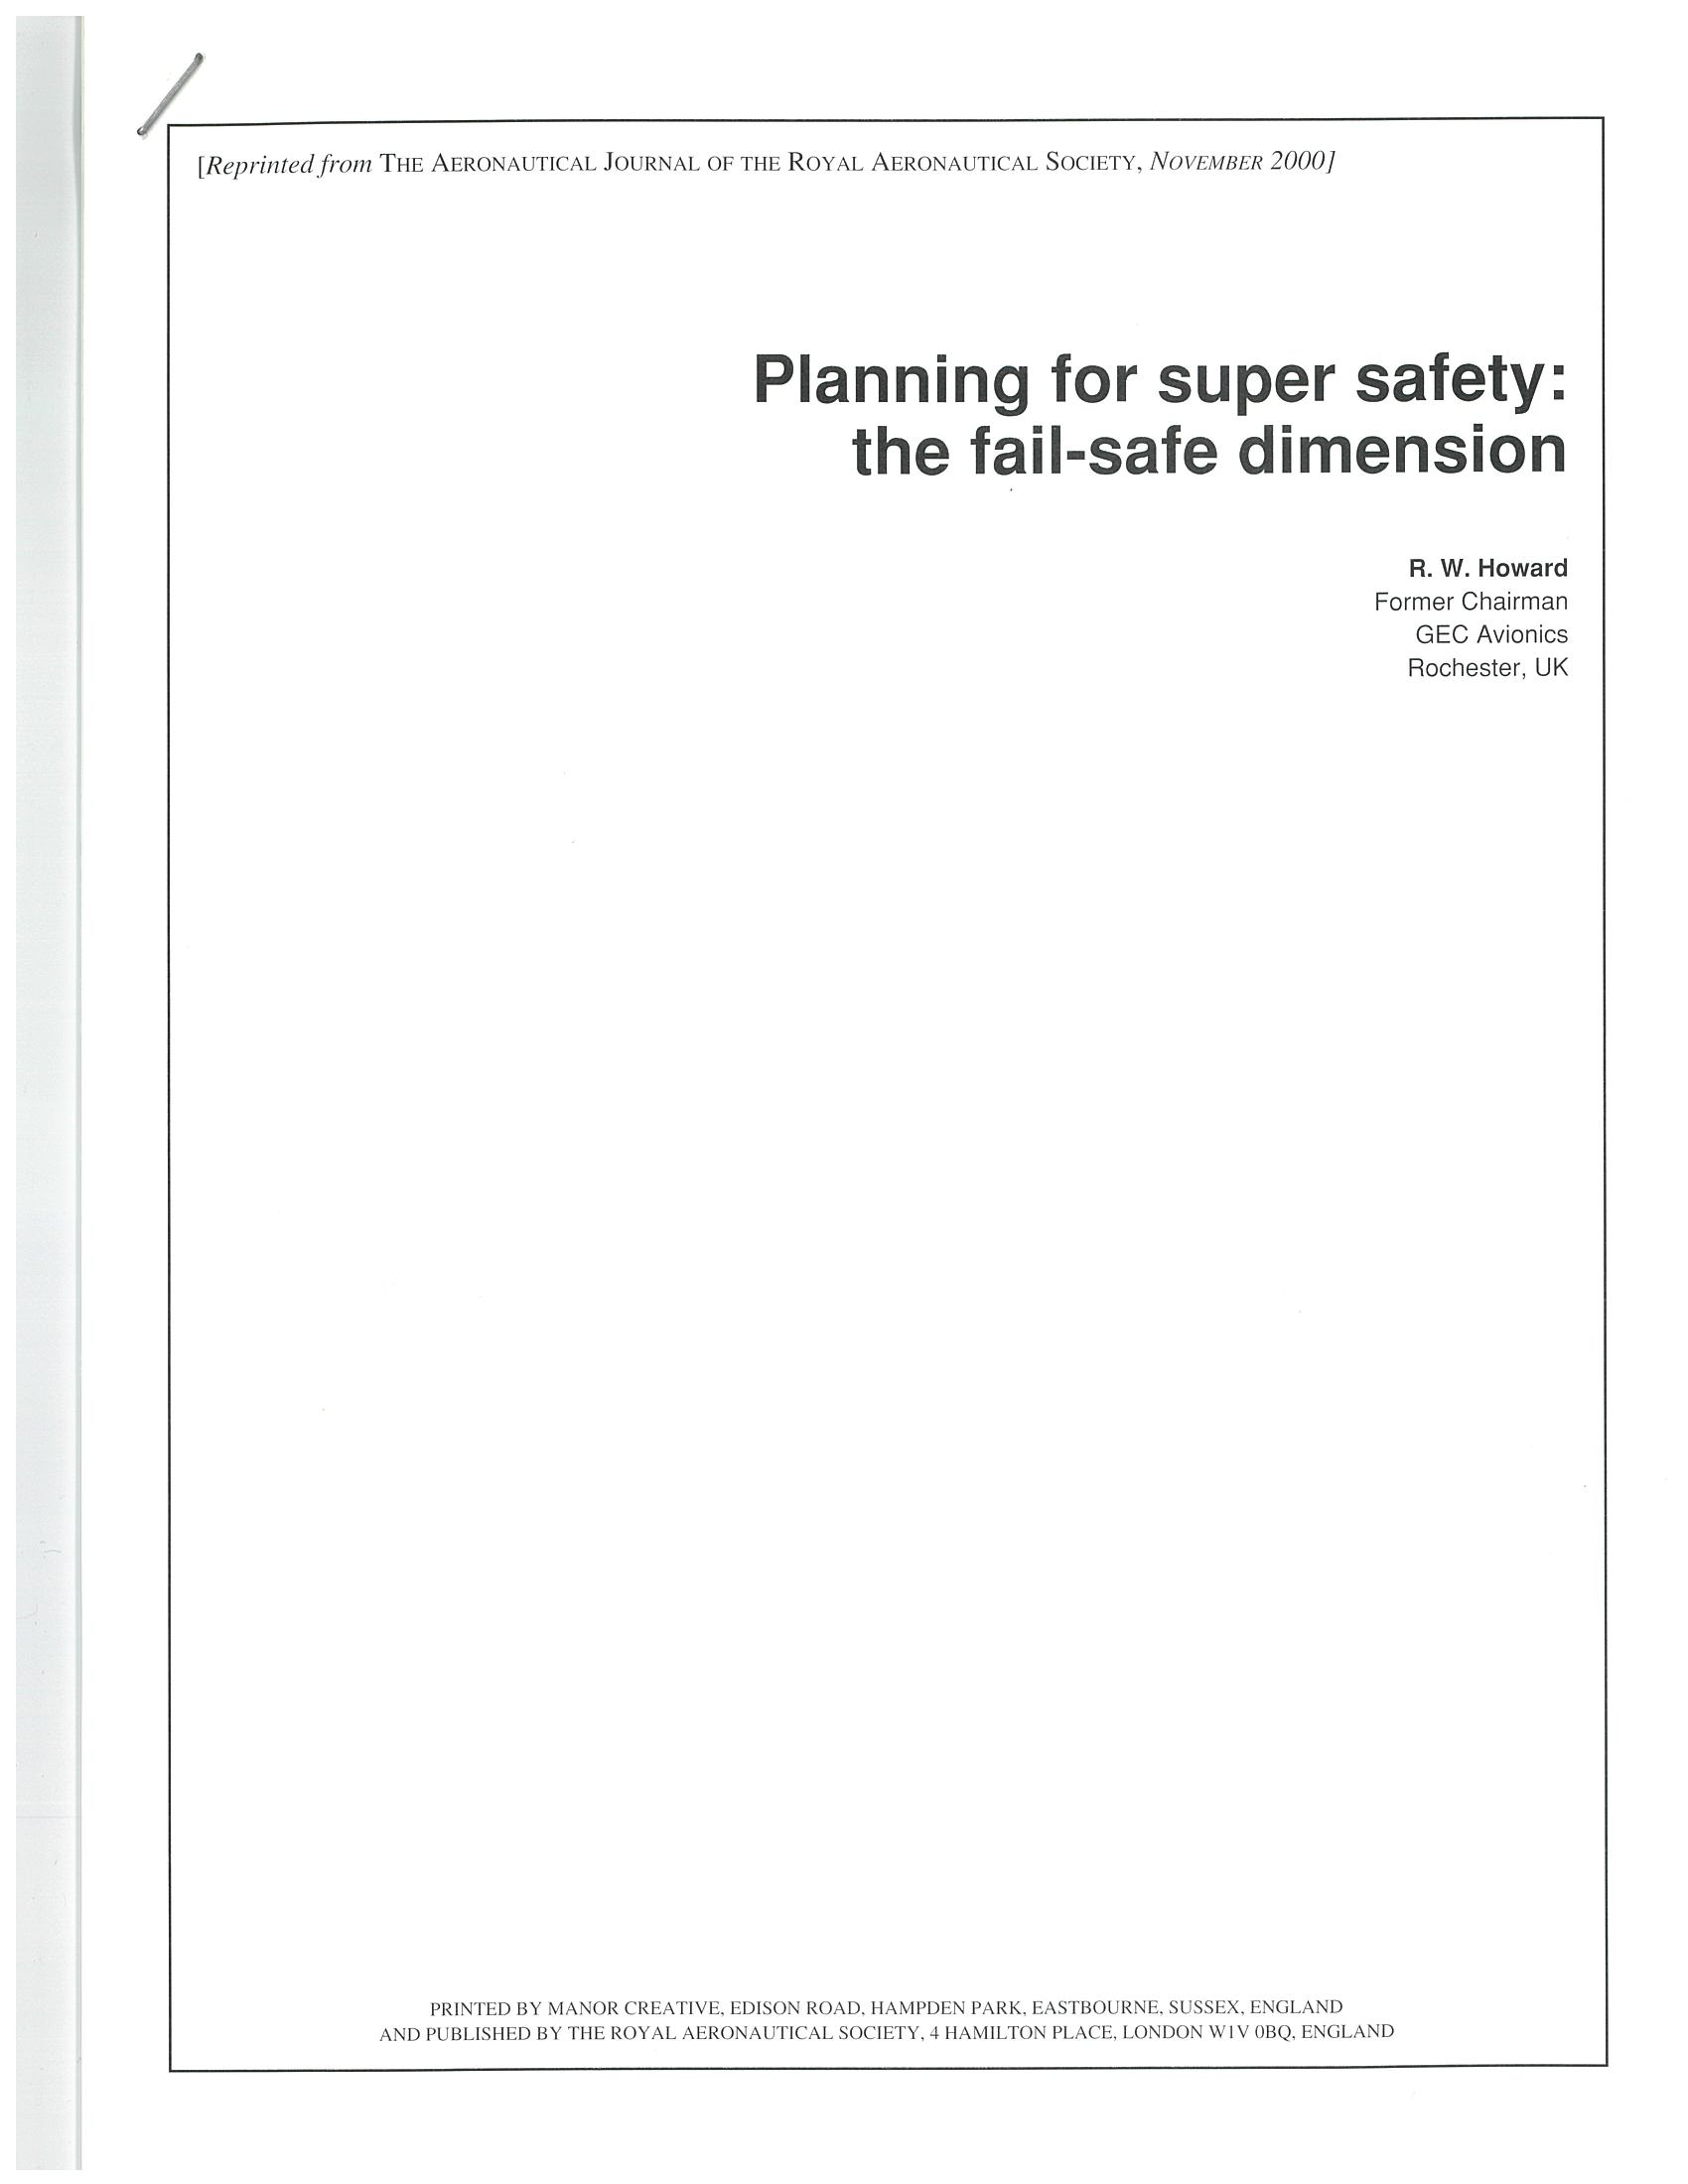 Planning for super safety: the Fail-Safe dimension